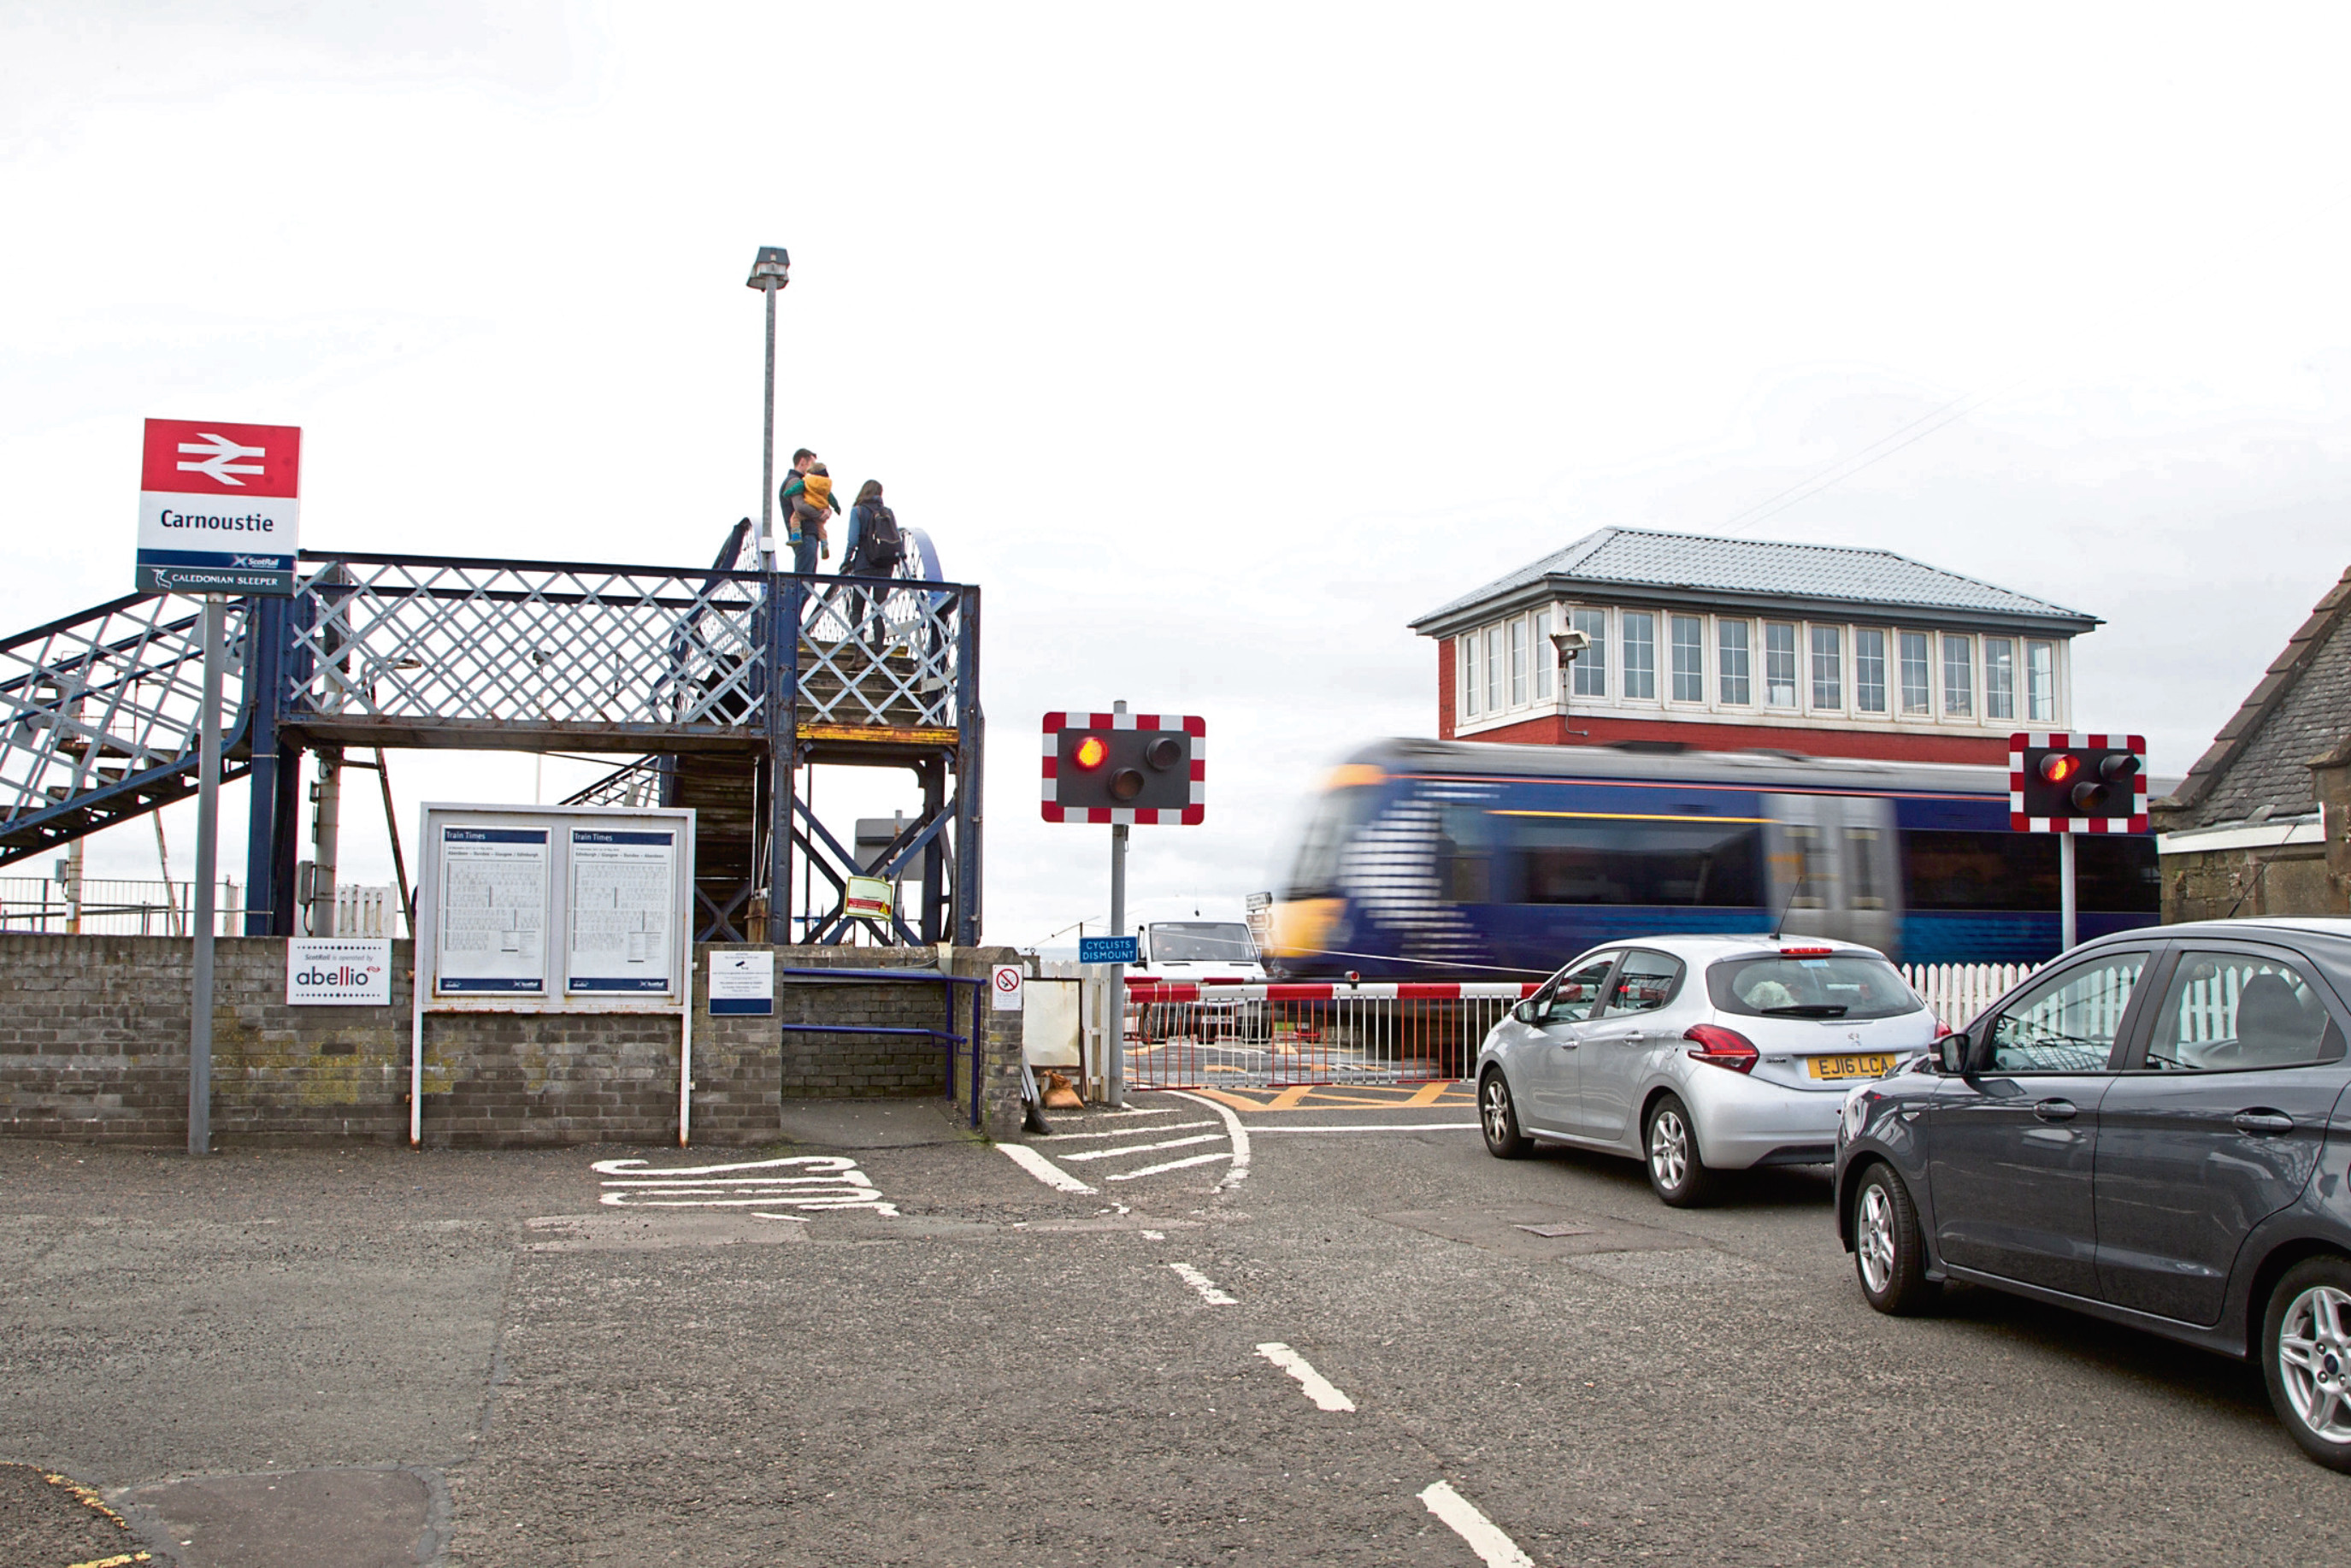 Level-crossing barrier at Carnoustie Railway Station